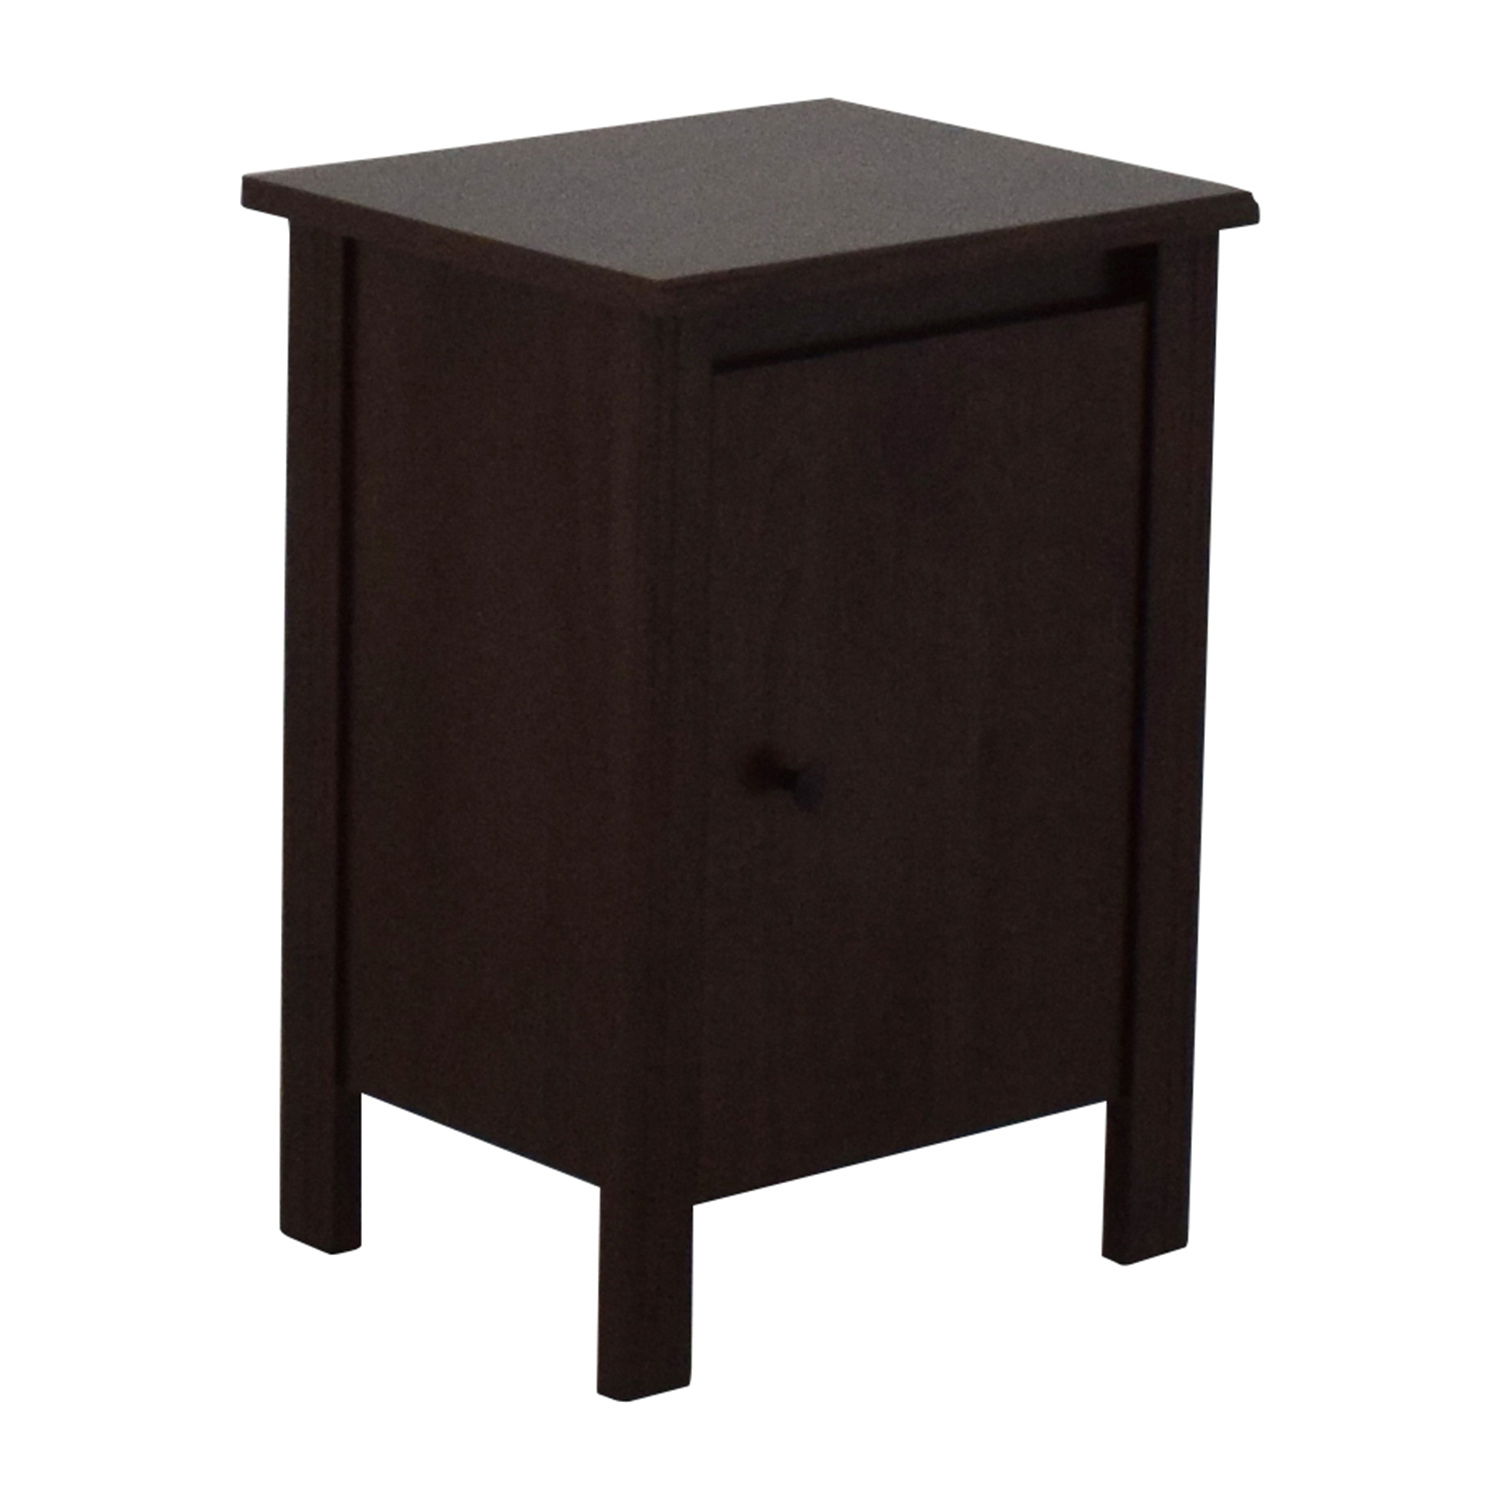 Unkown Dark Brown Nightstand with Shelves Tables